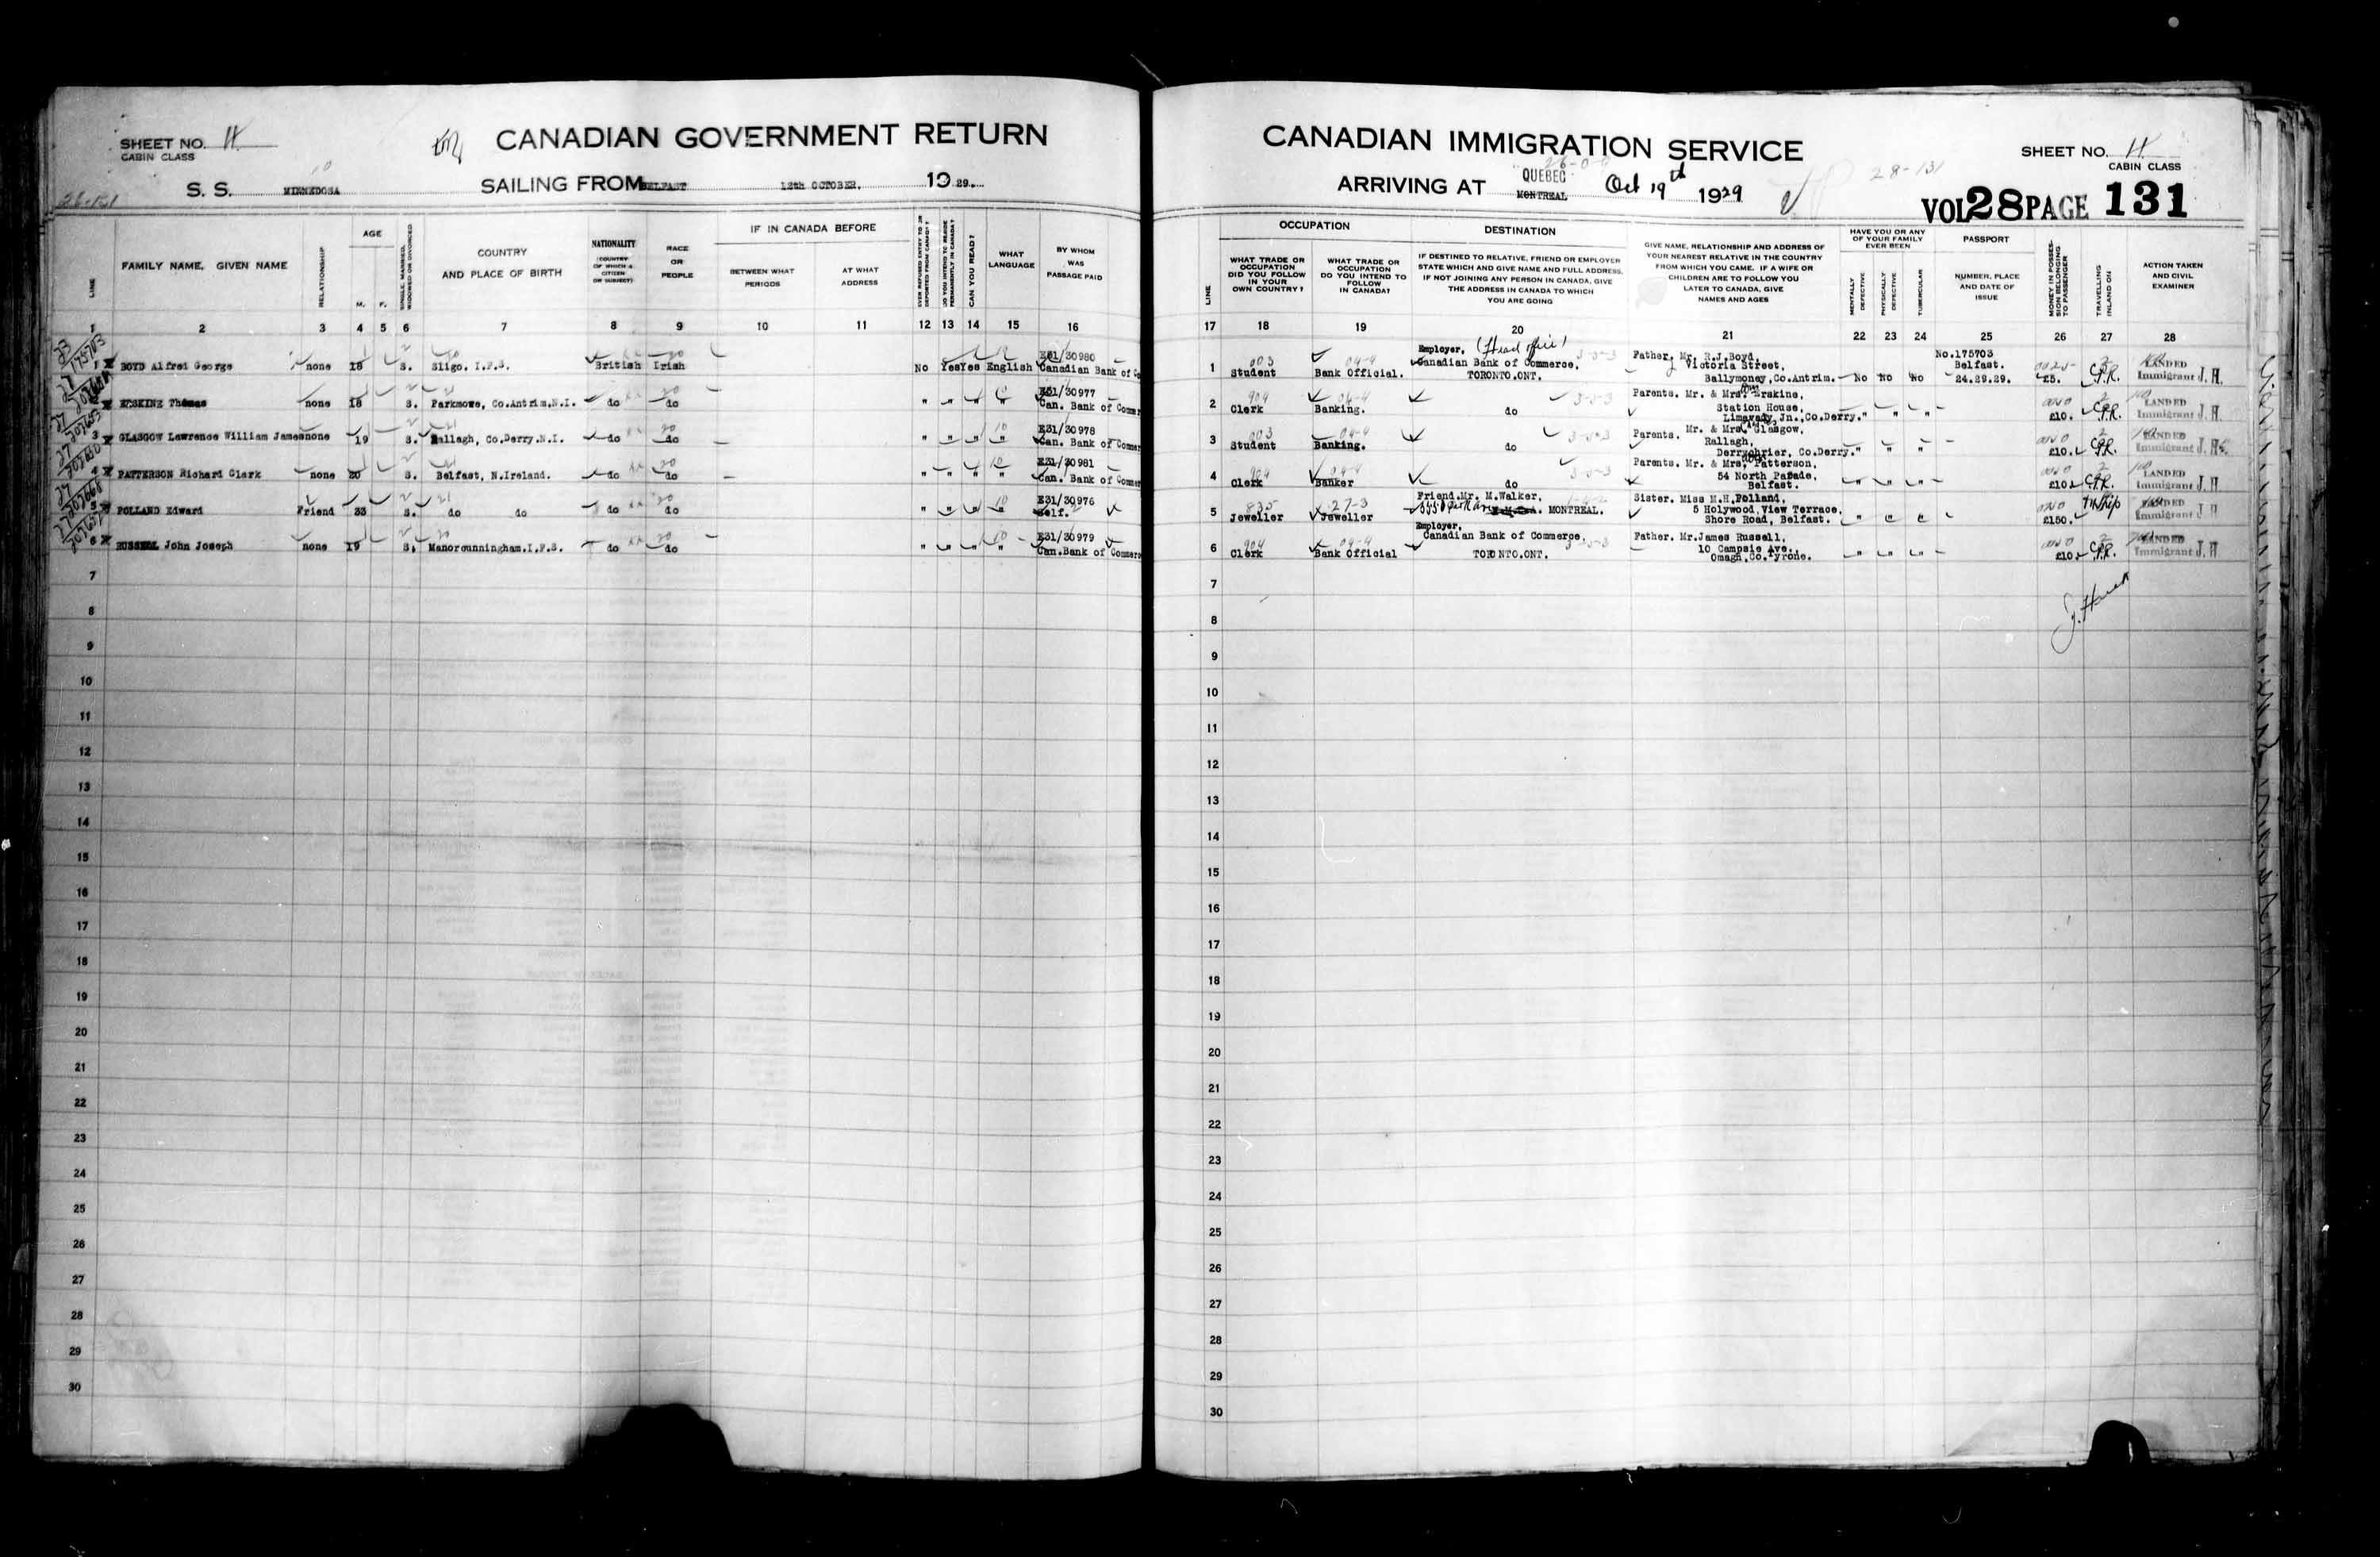 Title: Passenger Lists: Quebec City (1925-1935) - Mikan Number: 134839 - Microform: t-14760